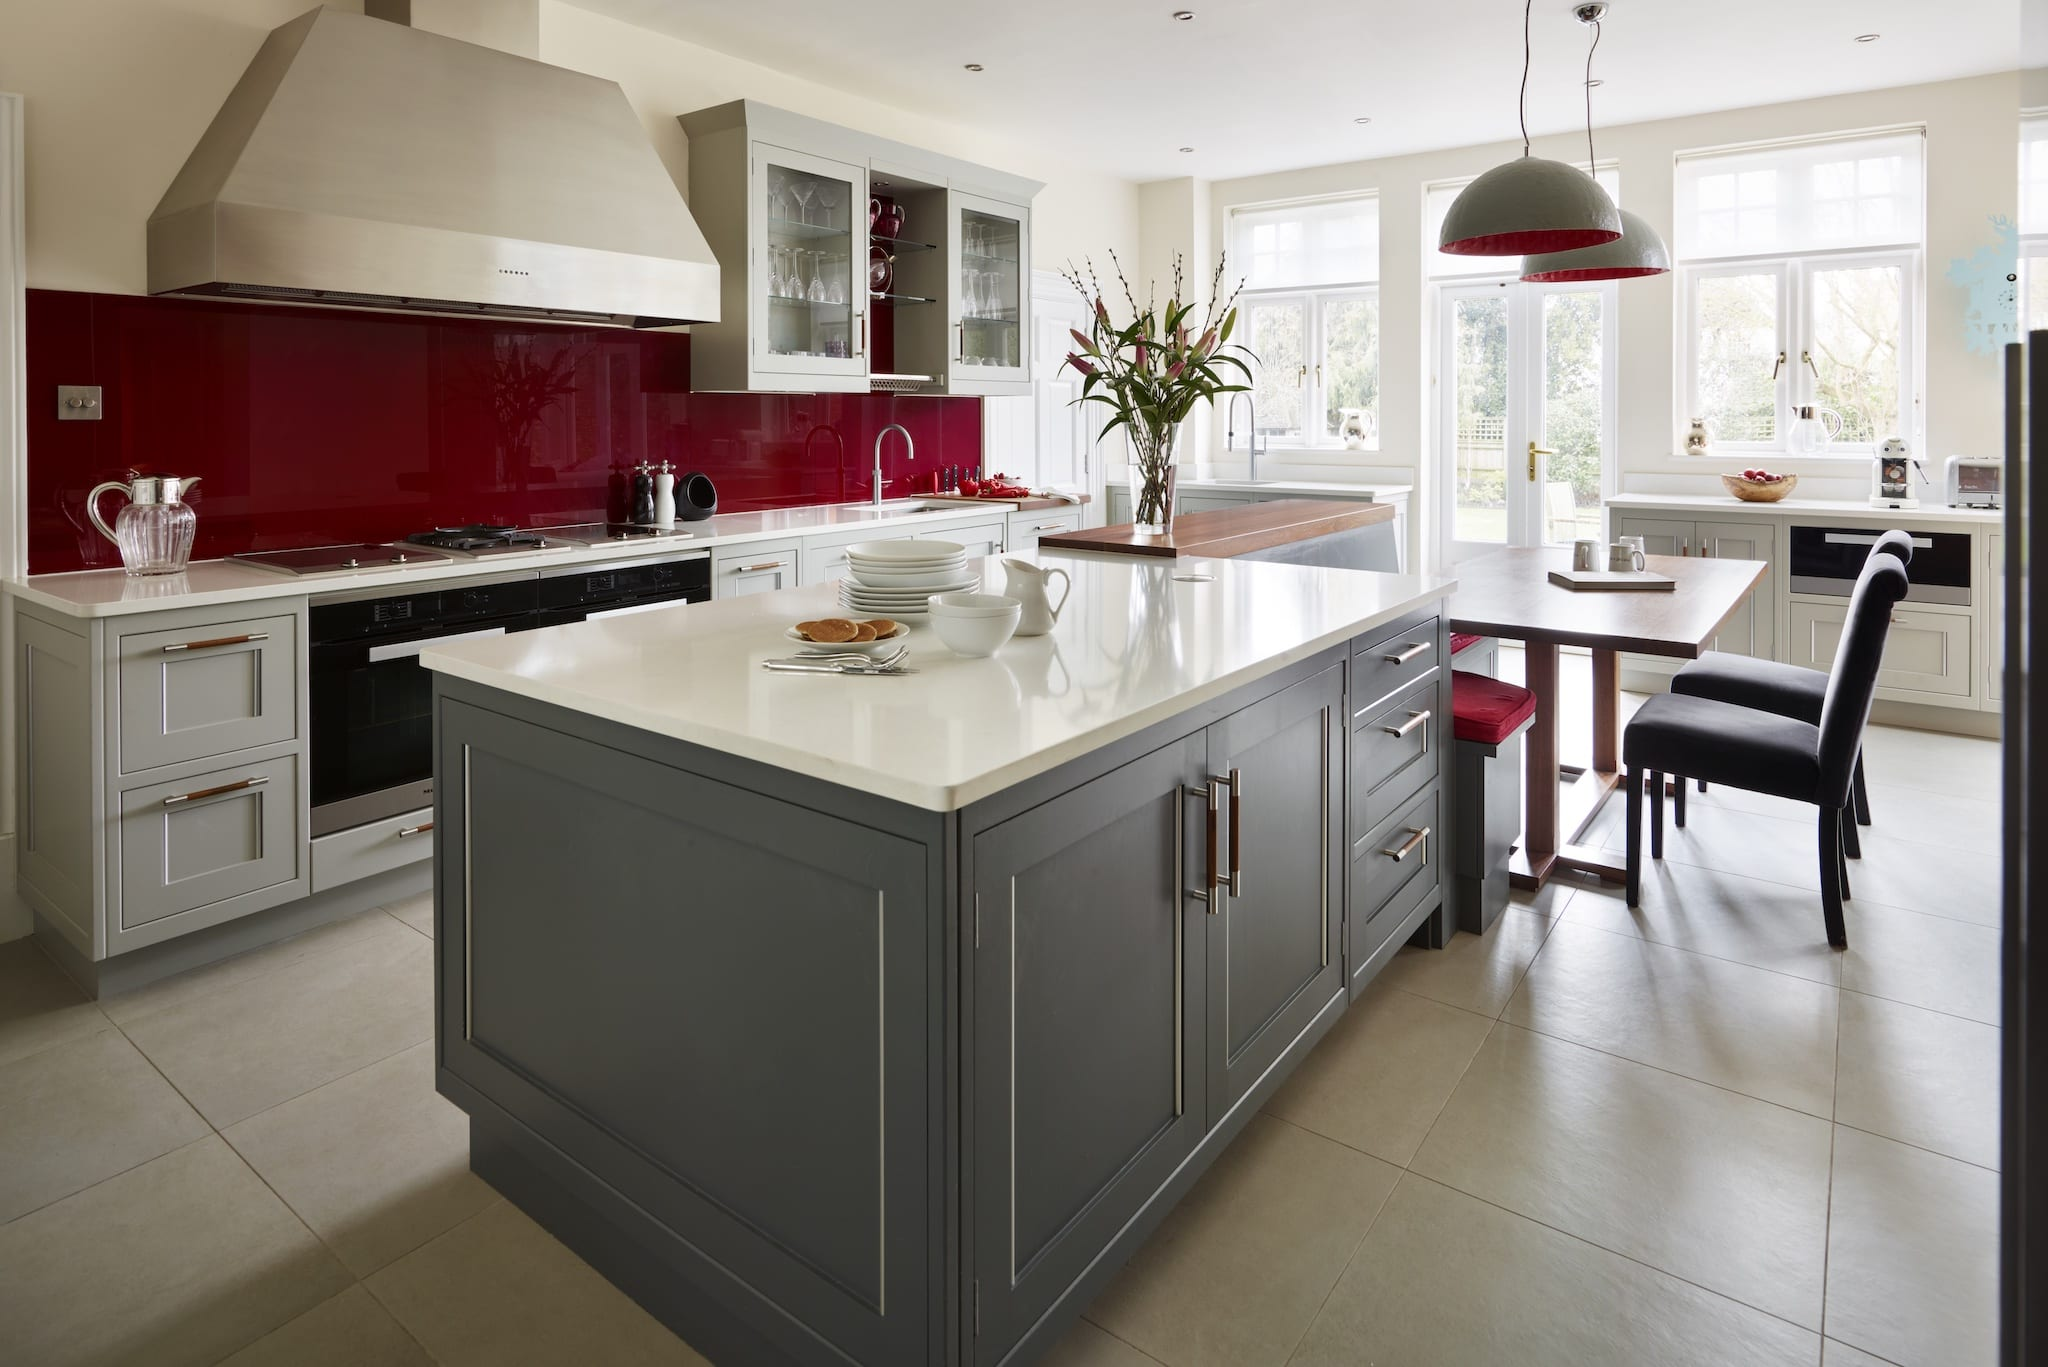 In Line With A Growing Demand For Entertaining Kitchens, Popular